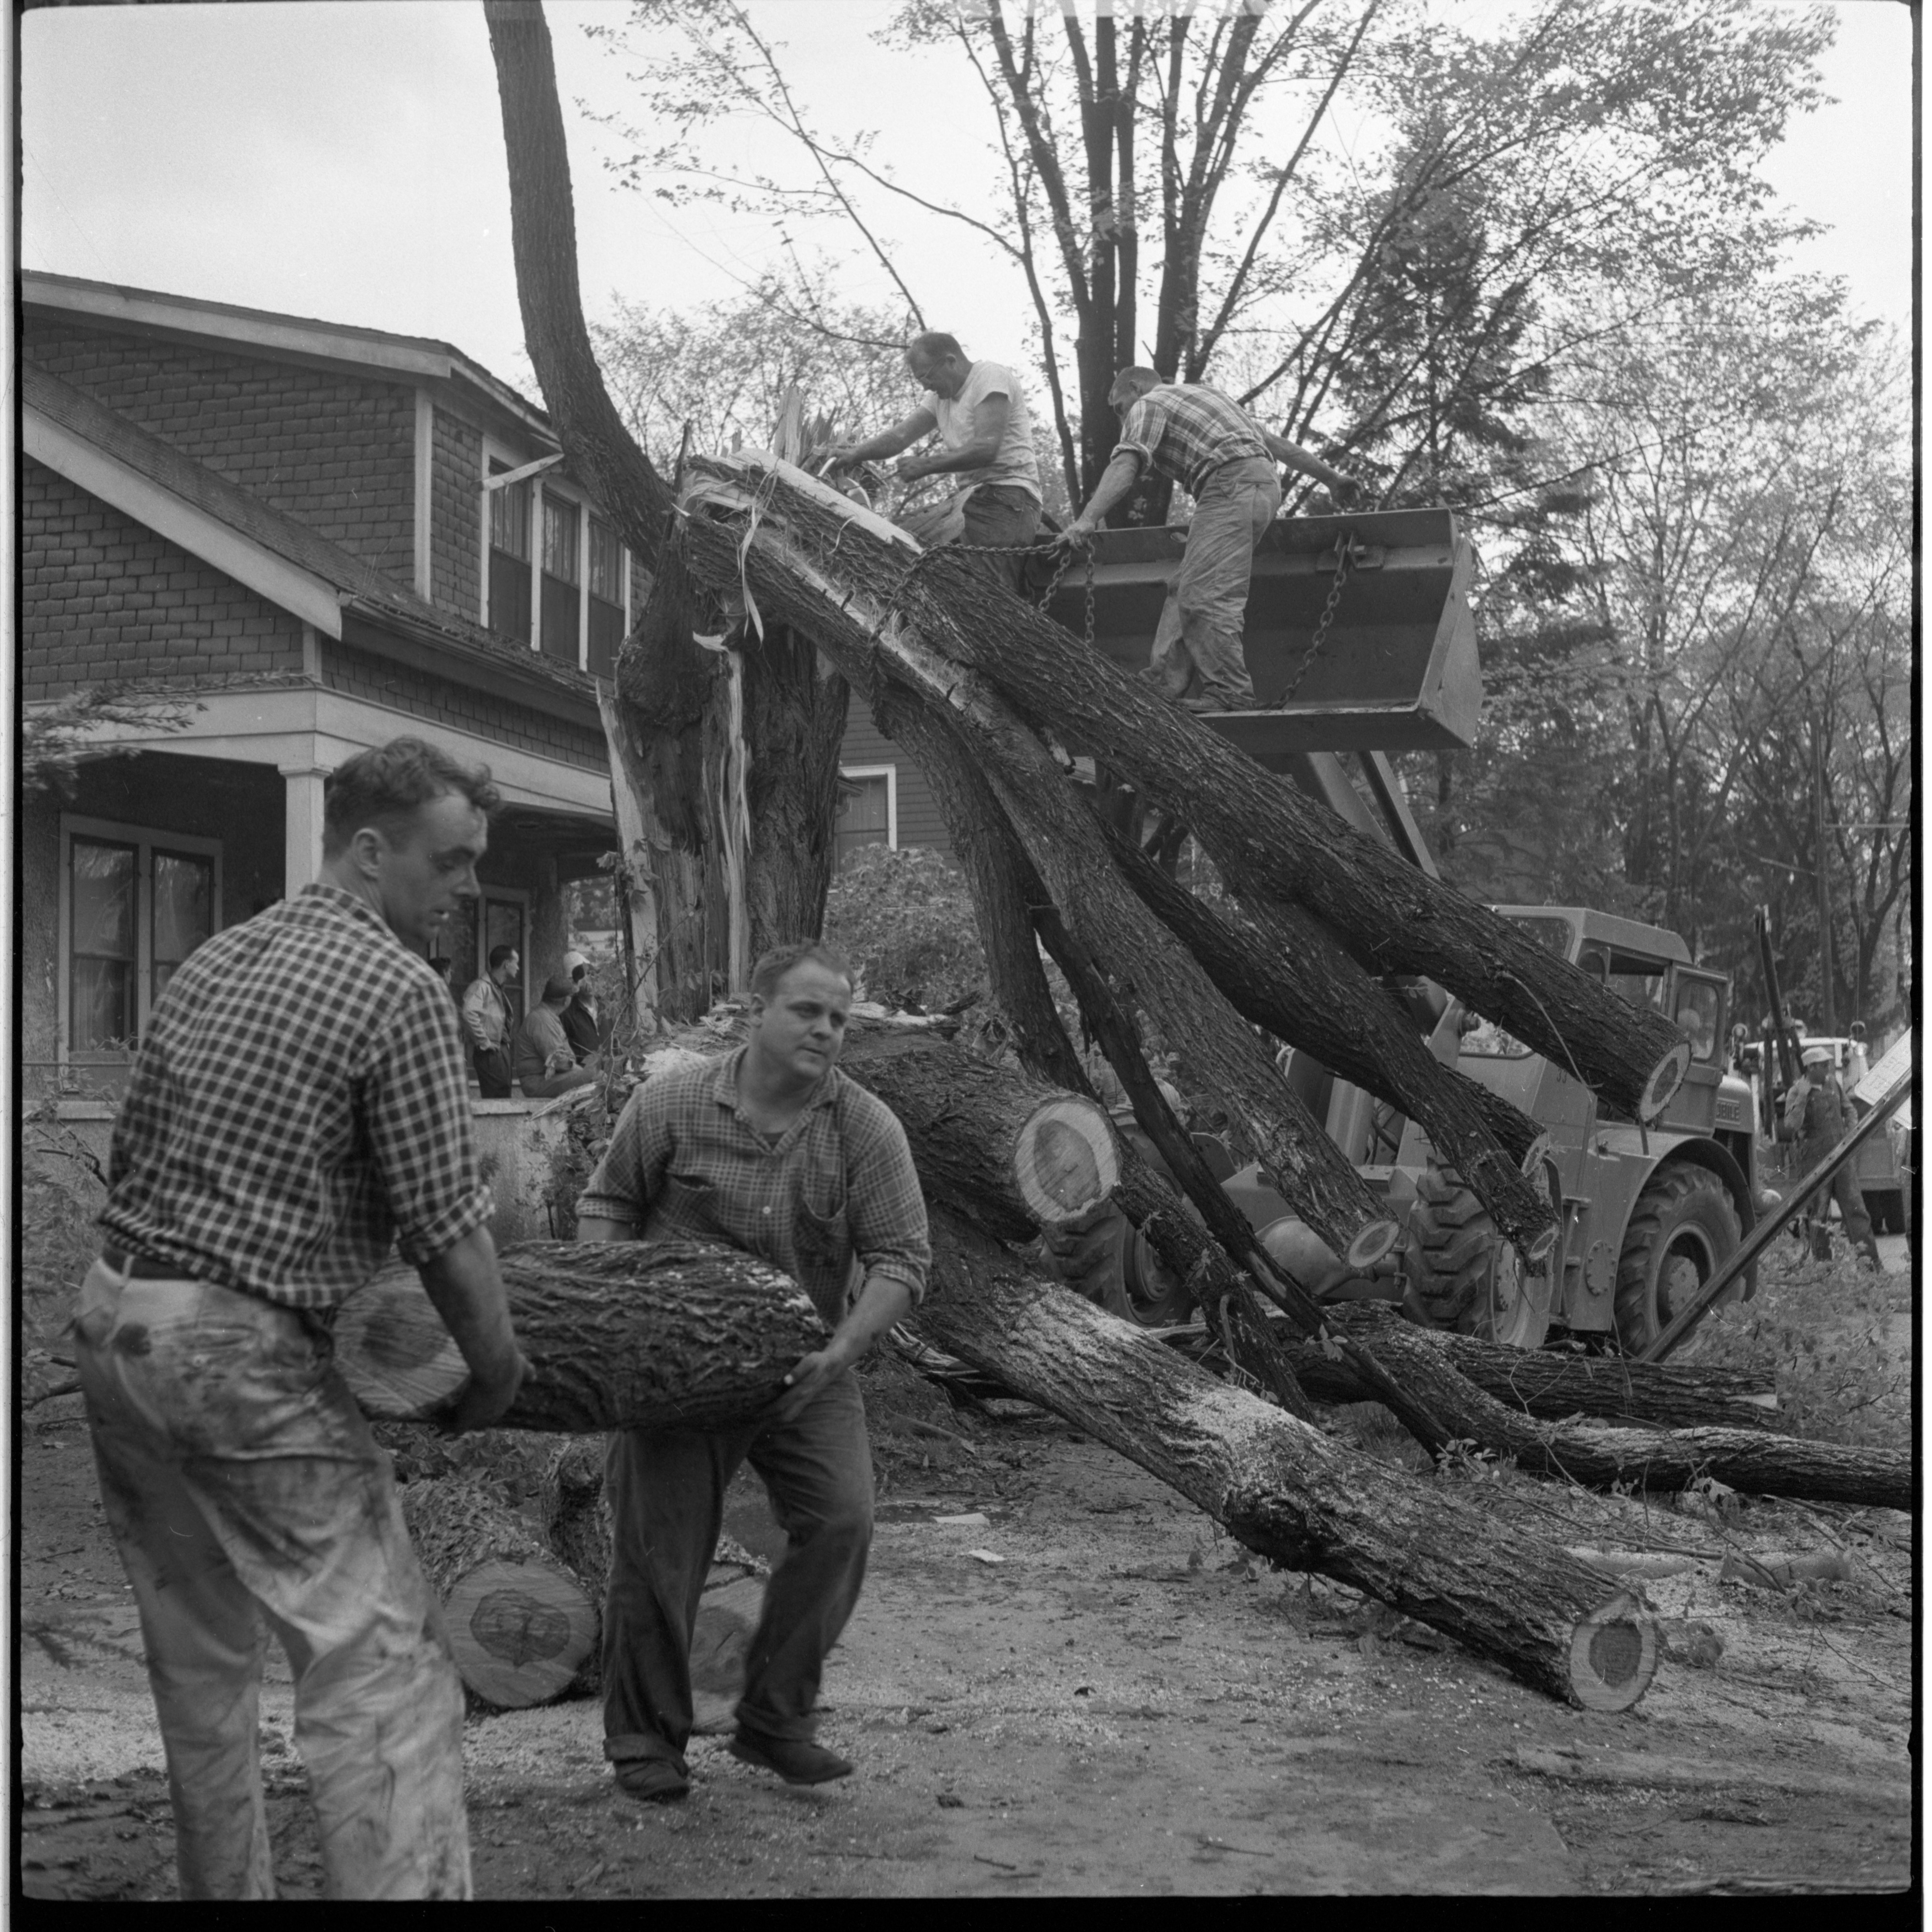 Residents Work To Clear Fallen Trees On Brookwood Place After Windstorm, May 1959 image